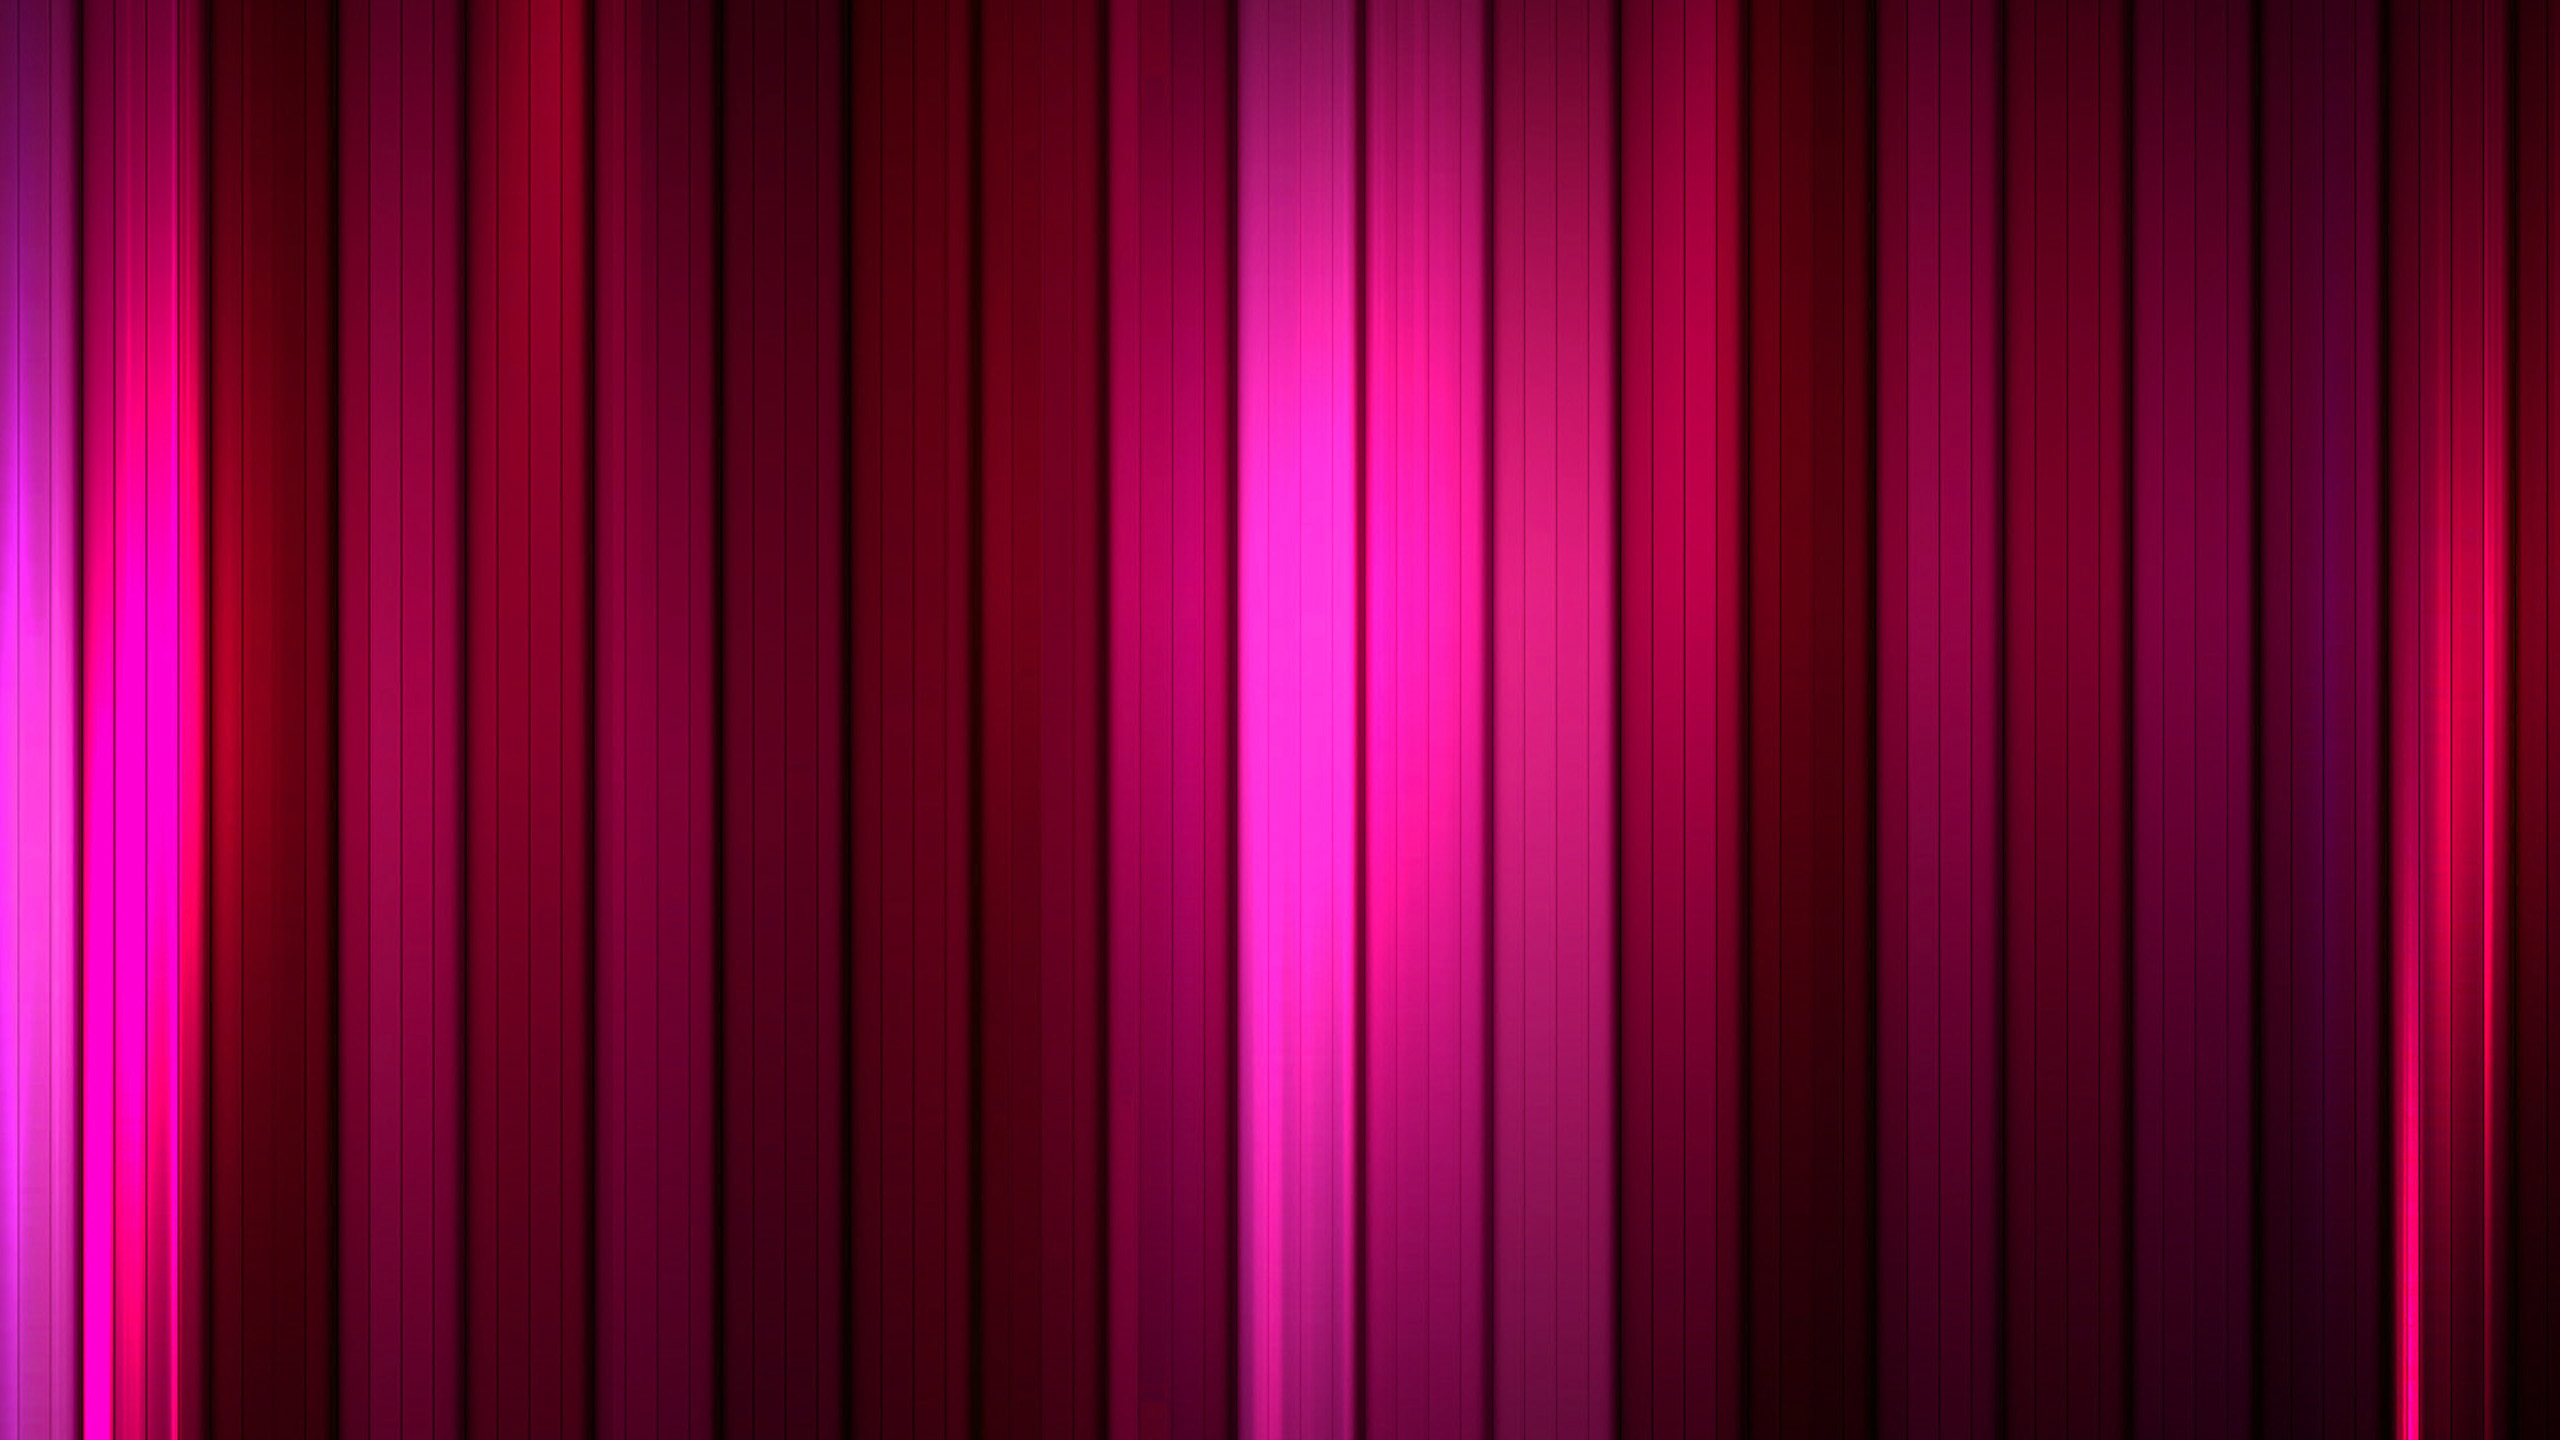 Download Pink Stripes Wallpaper Gallery